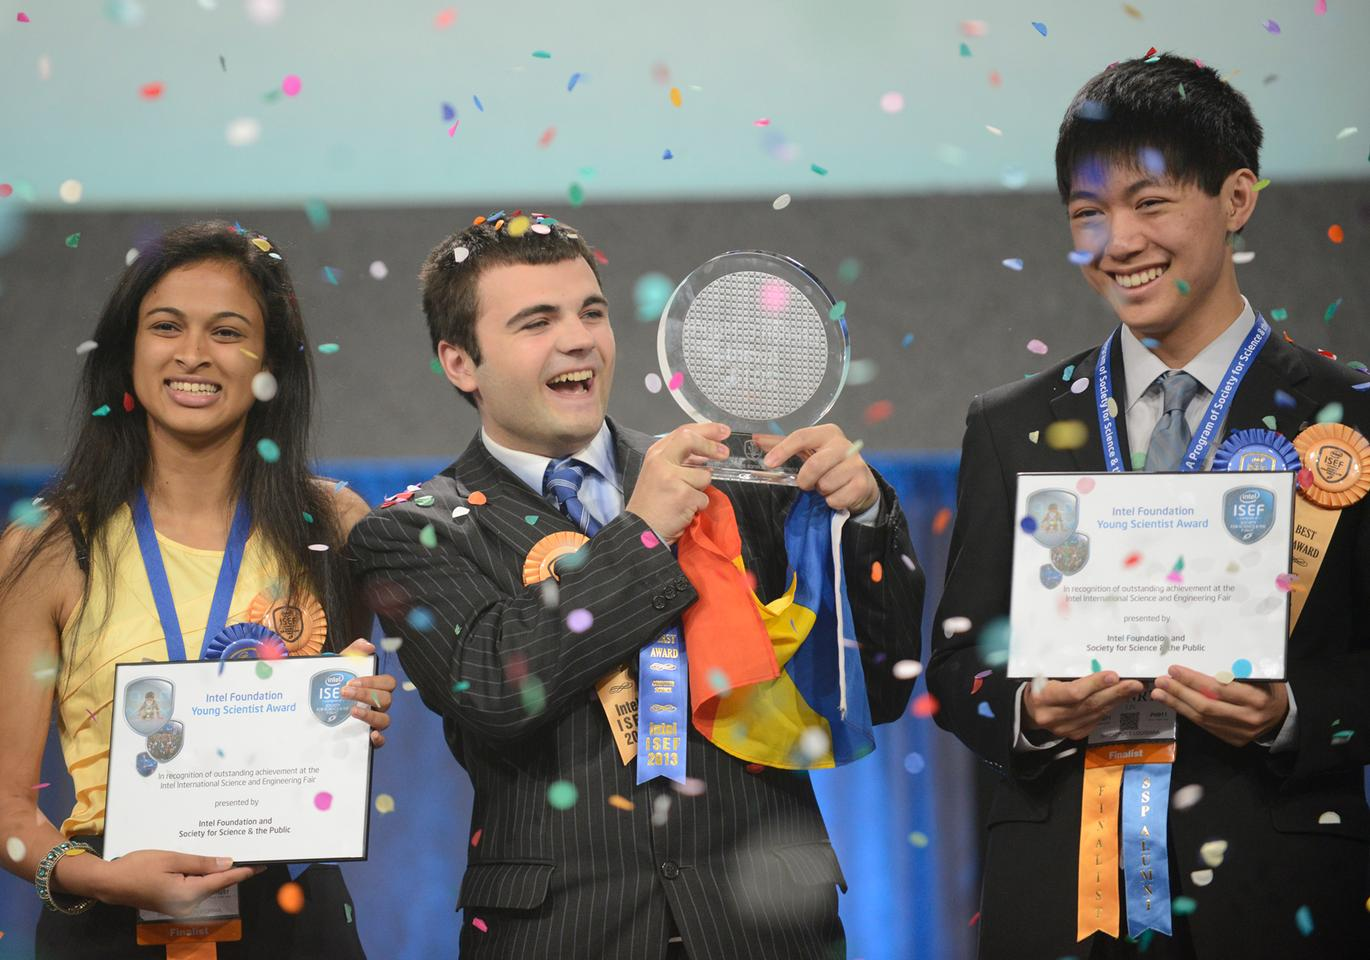 Gordon E. Moore Award winner Ionut Budisteanu (center), with Intel Foundation Young Scientist Award winners Eesha Khare and Henry Lin